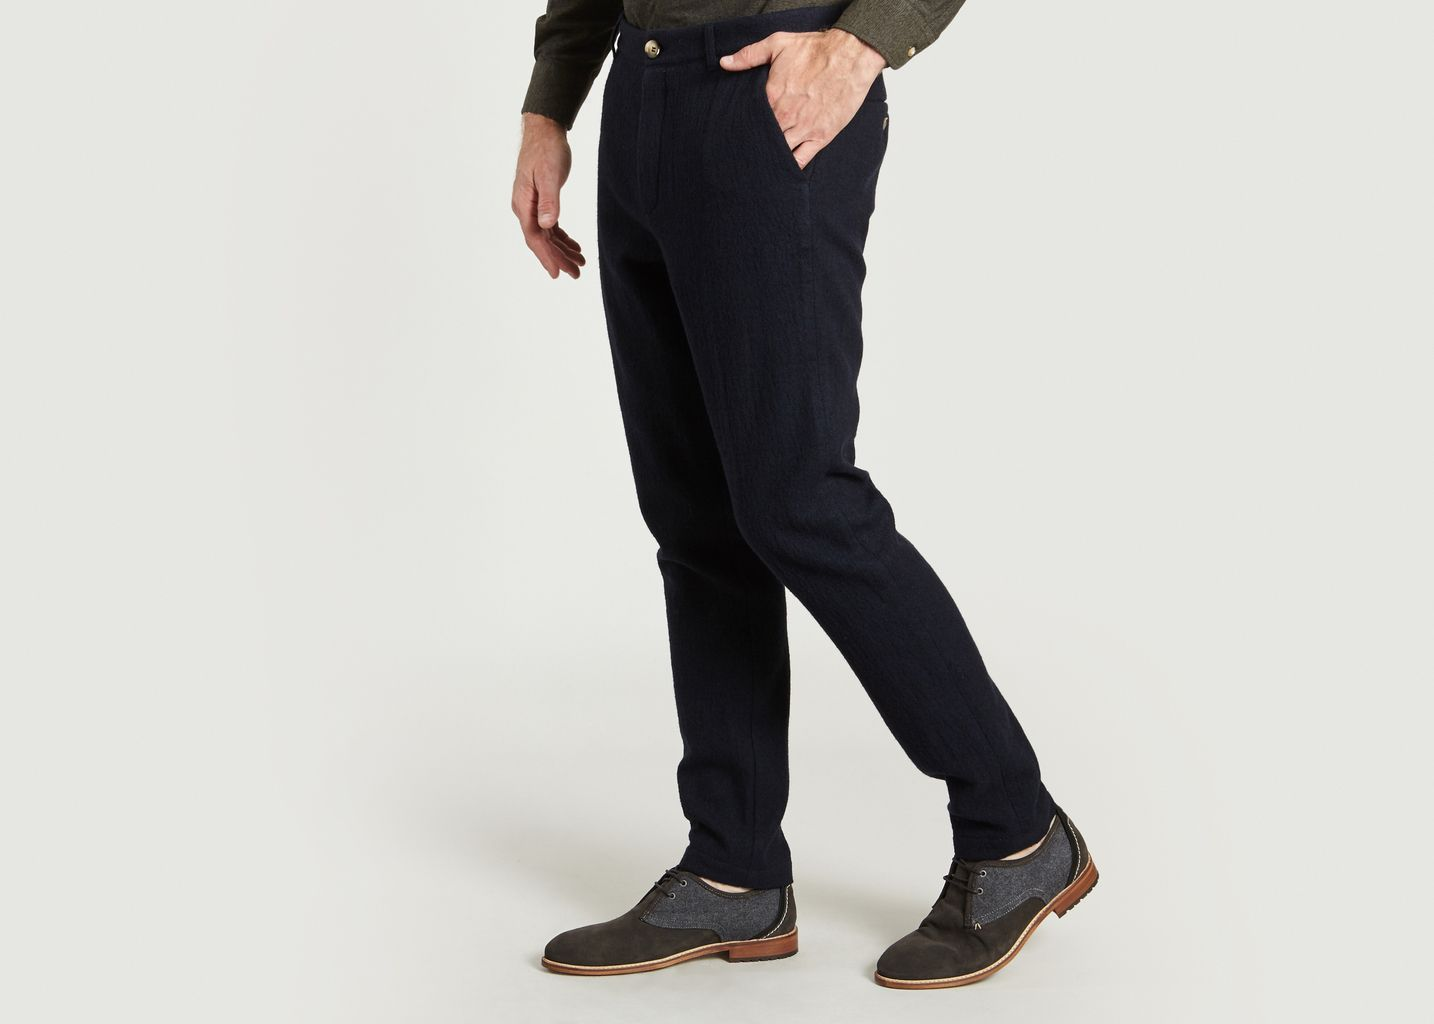 Pantalon Droit GN6 - Commune de Paris